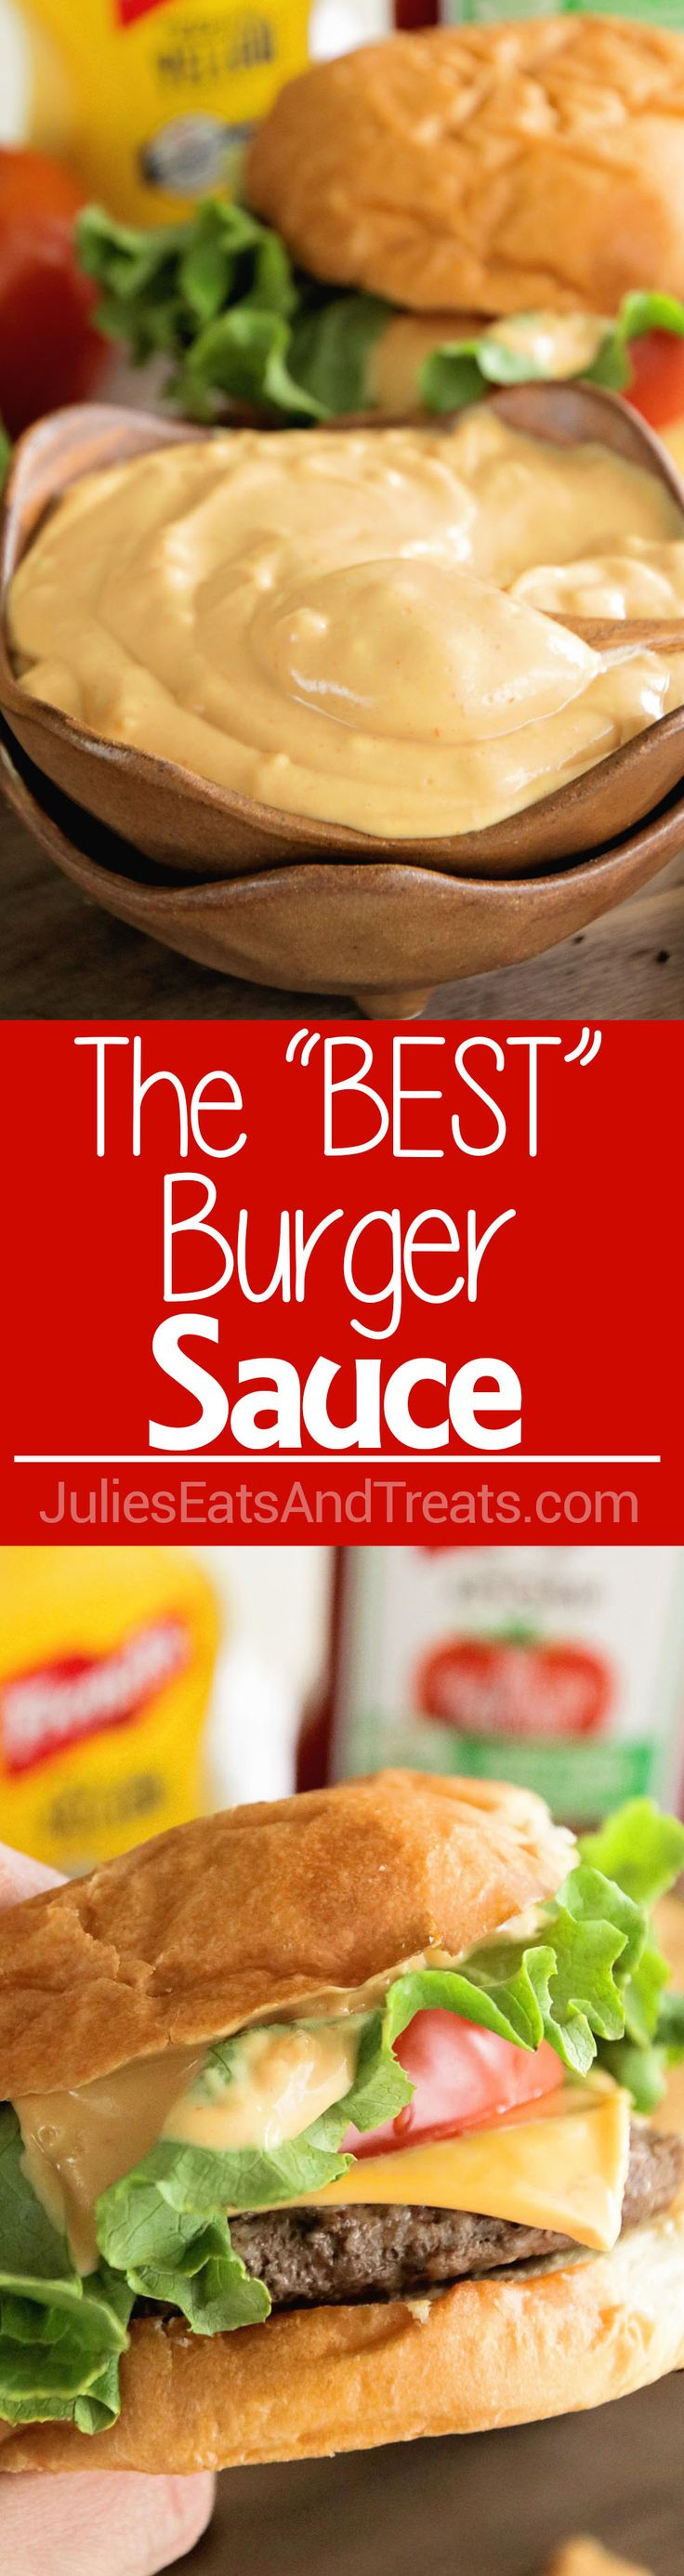 The Best Burger Sauce EVER! This is the Ultimate Sauce to top your Hamburgers with! Super Simple & Delicious! via @julieseats #FrenchsCrowd #FrenchsMustard